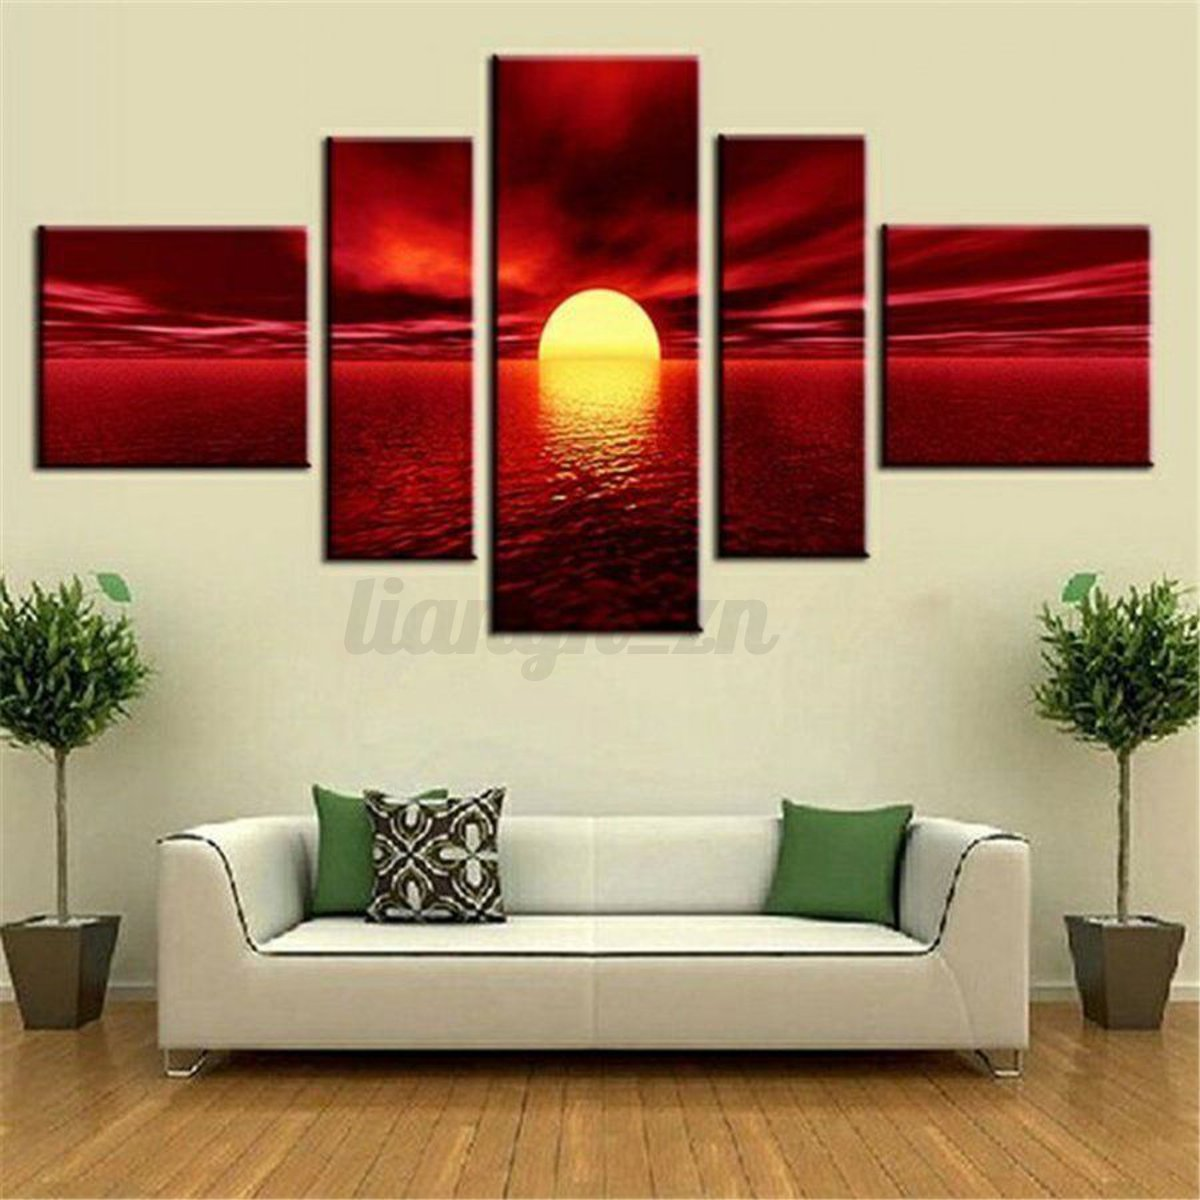 5pcs Framed Unframed Red Sunrise Landscape Canvas Prints